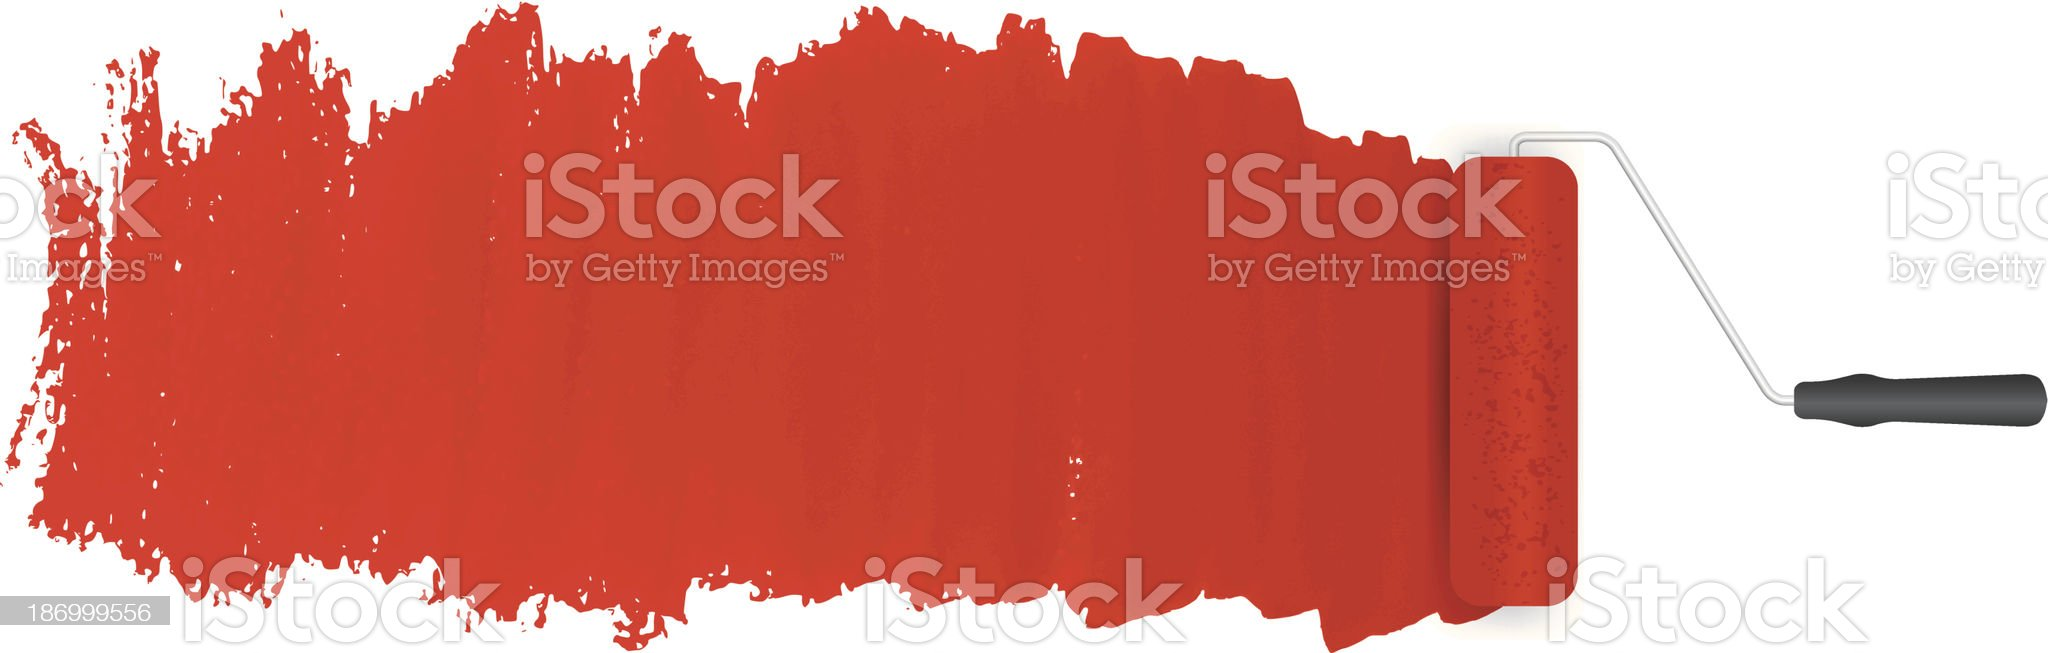 Red paint roller and applied paint on a white background royalty-free stock vector art